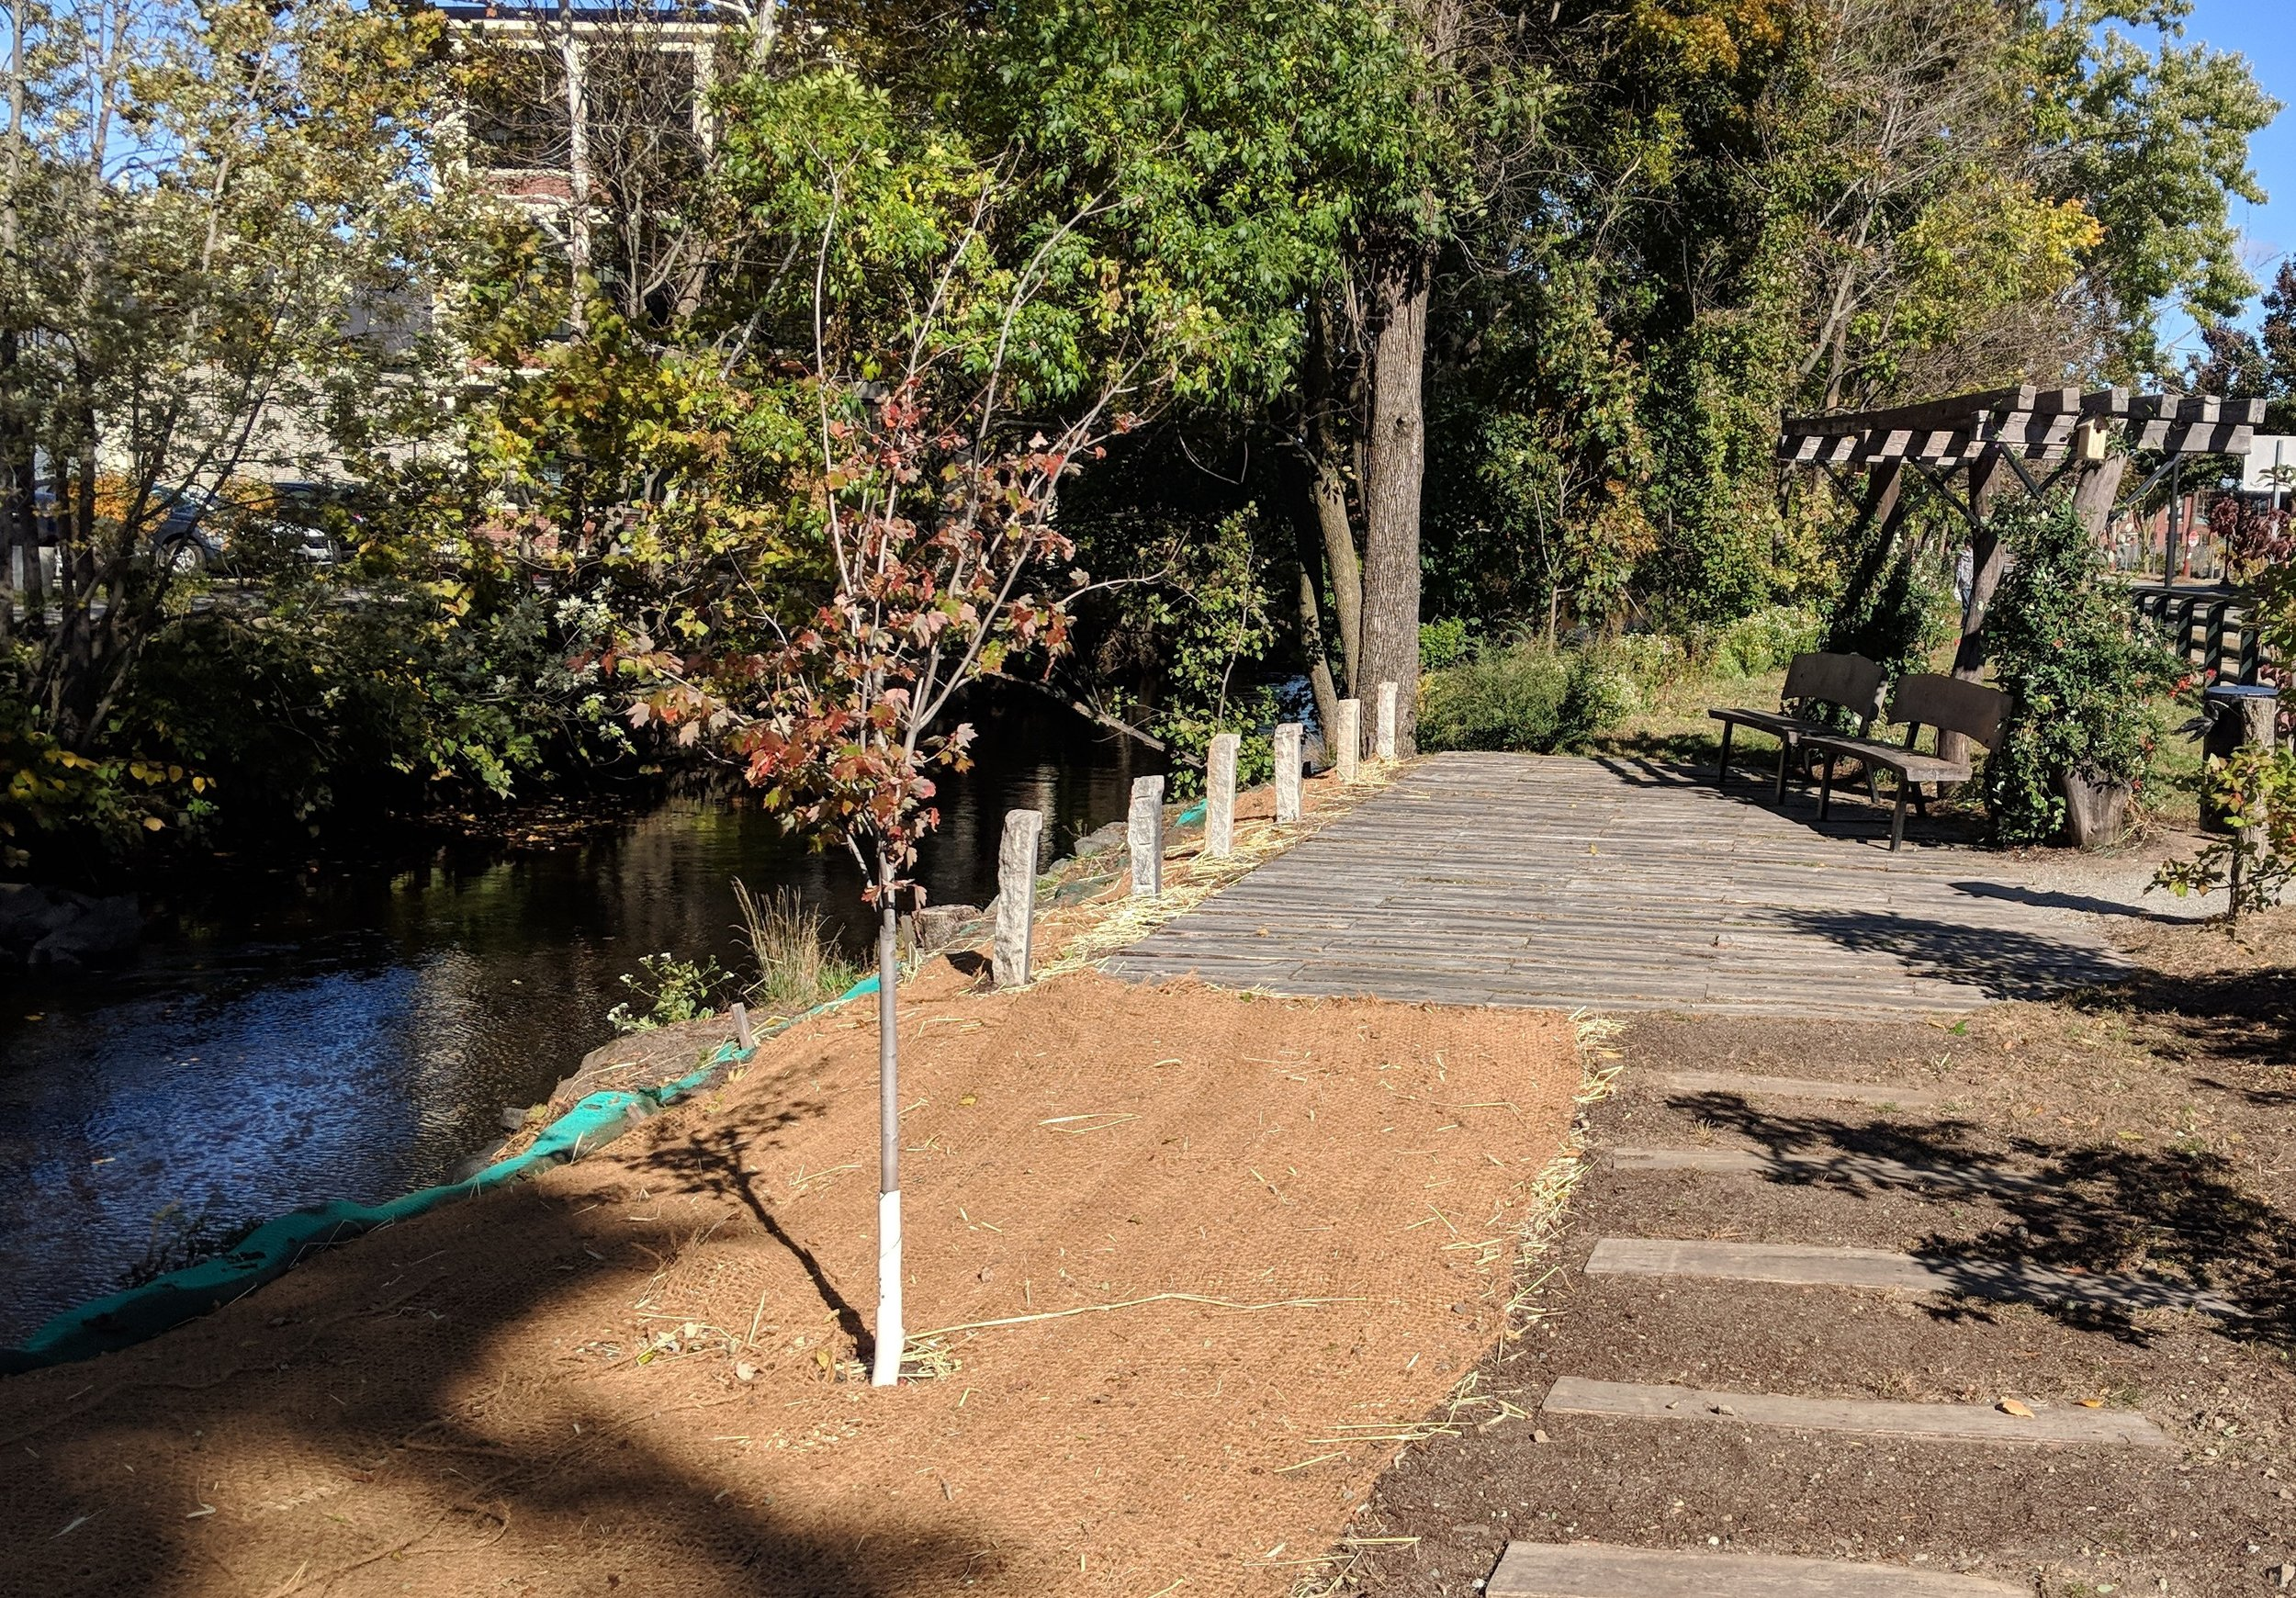 A new pocket park along the Woonasquatucket River in the Valley neighborhood. (Tim Faulkner/ecoRI News)